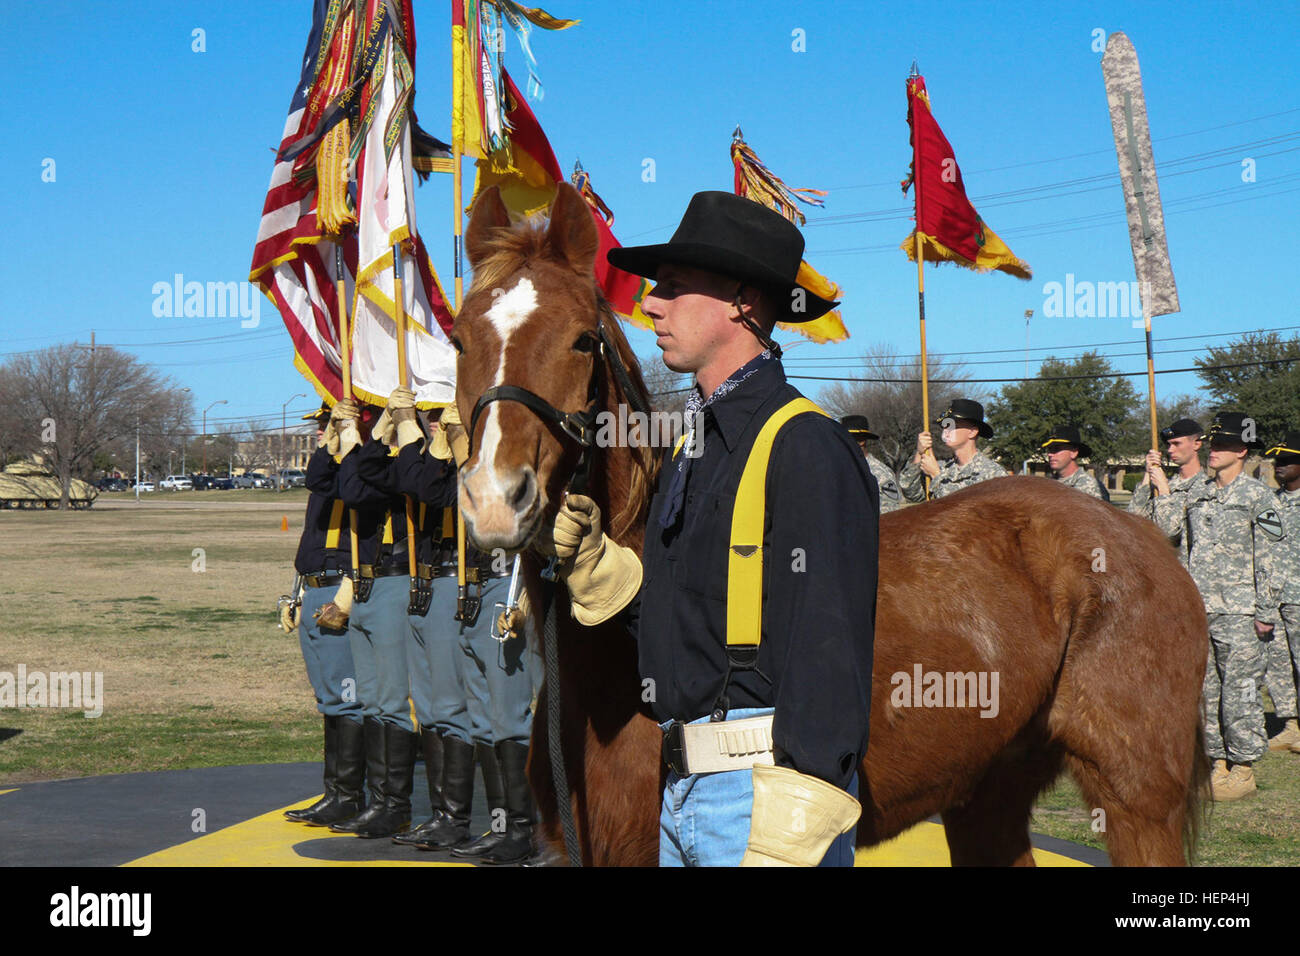 ajax a former member of the 1st cavalry division horse cavalry